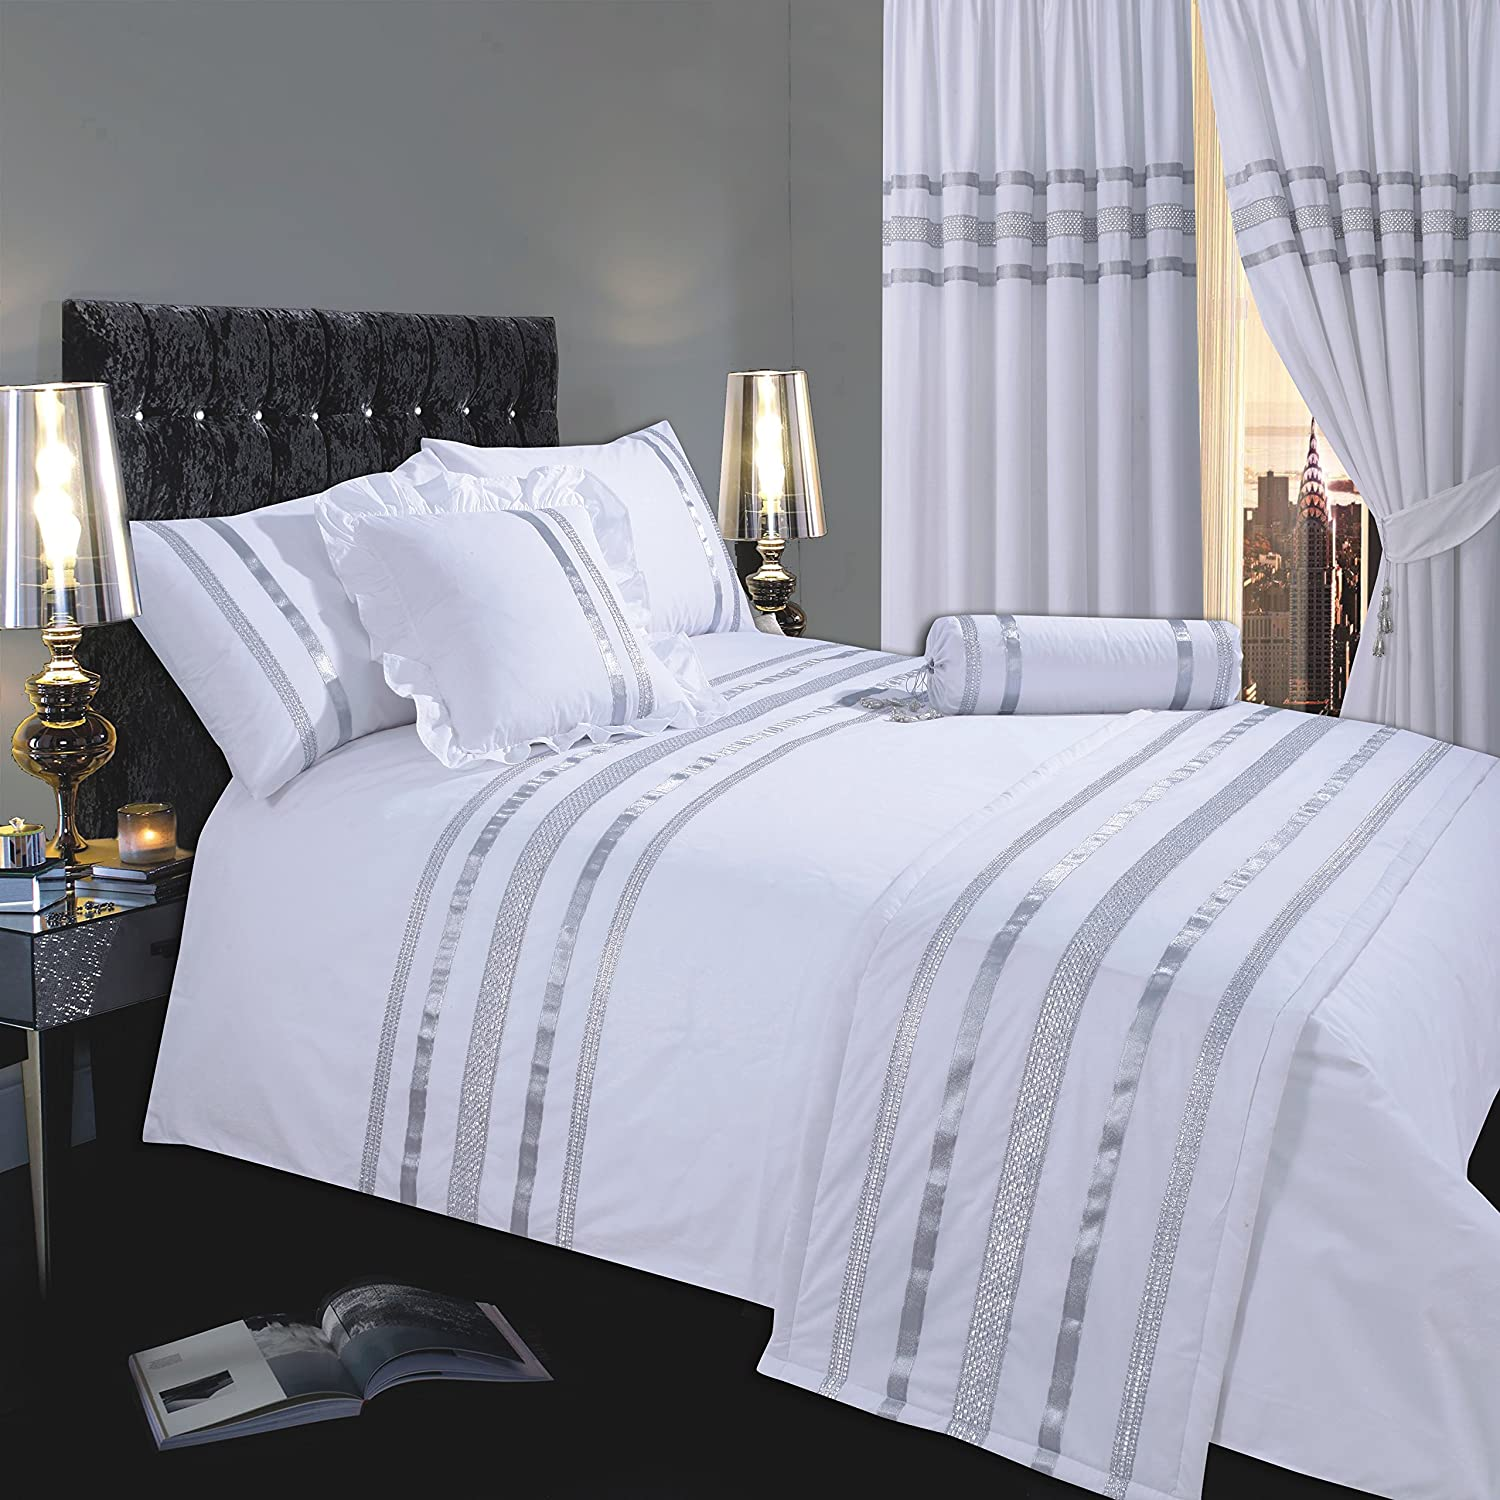 prd rouchelle harry la set cover corry duvet silver toilegreymain collection expand limited rochelle